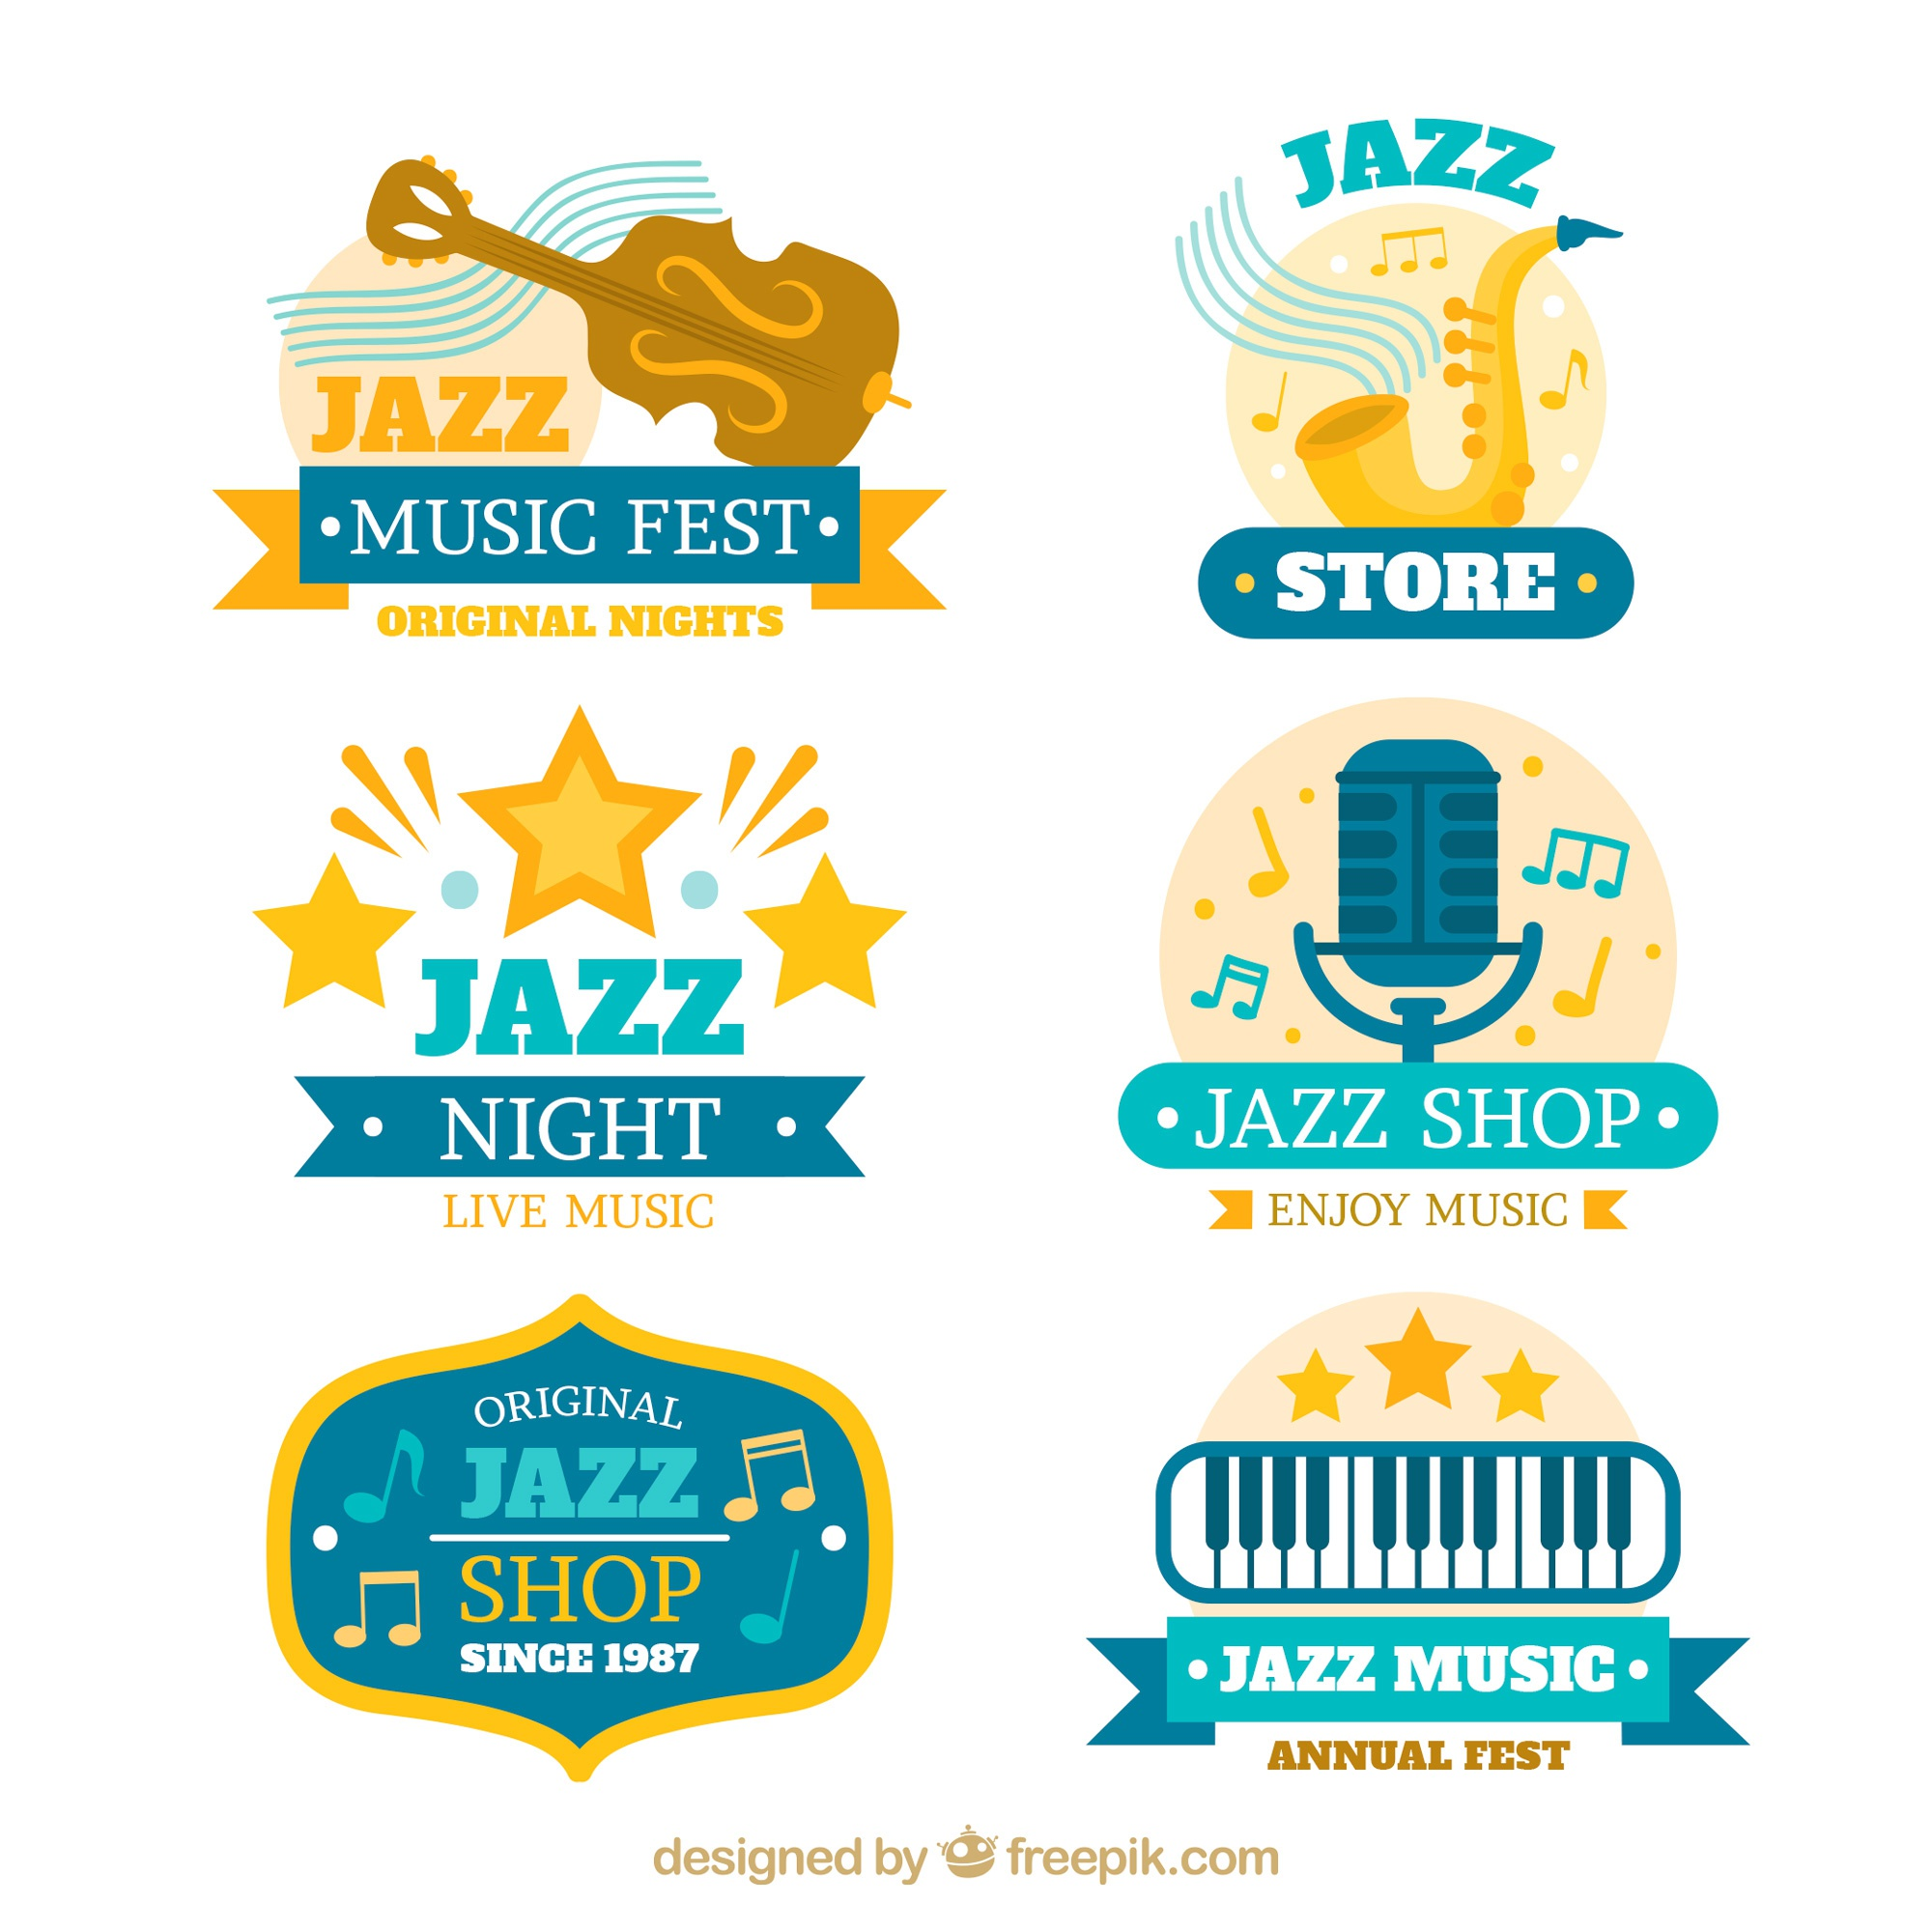 Jazz logos collection in flat style